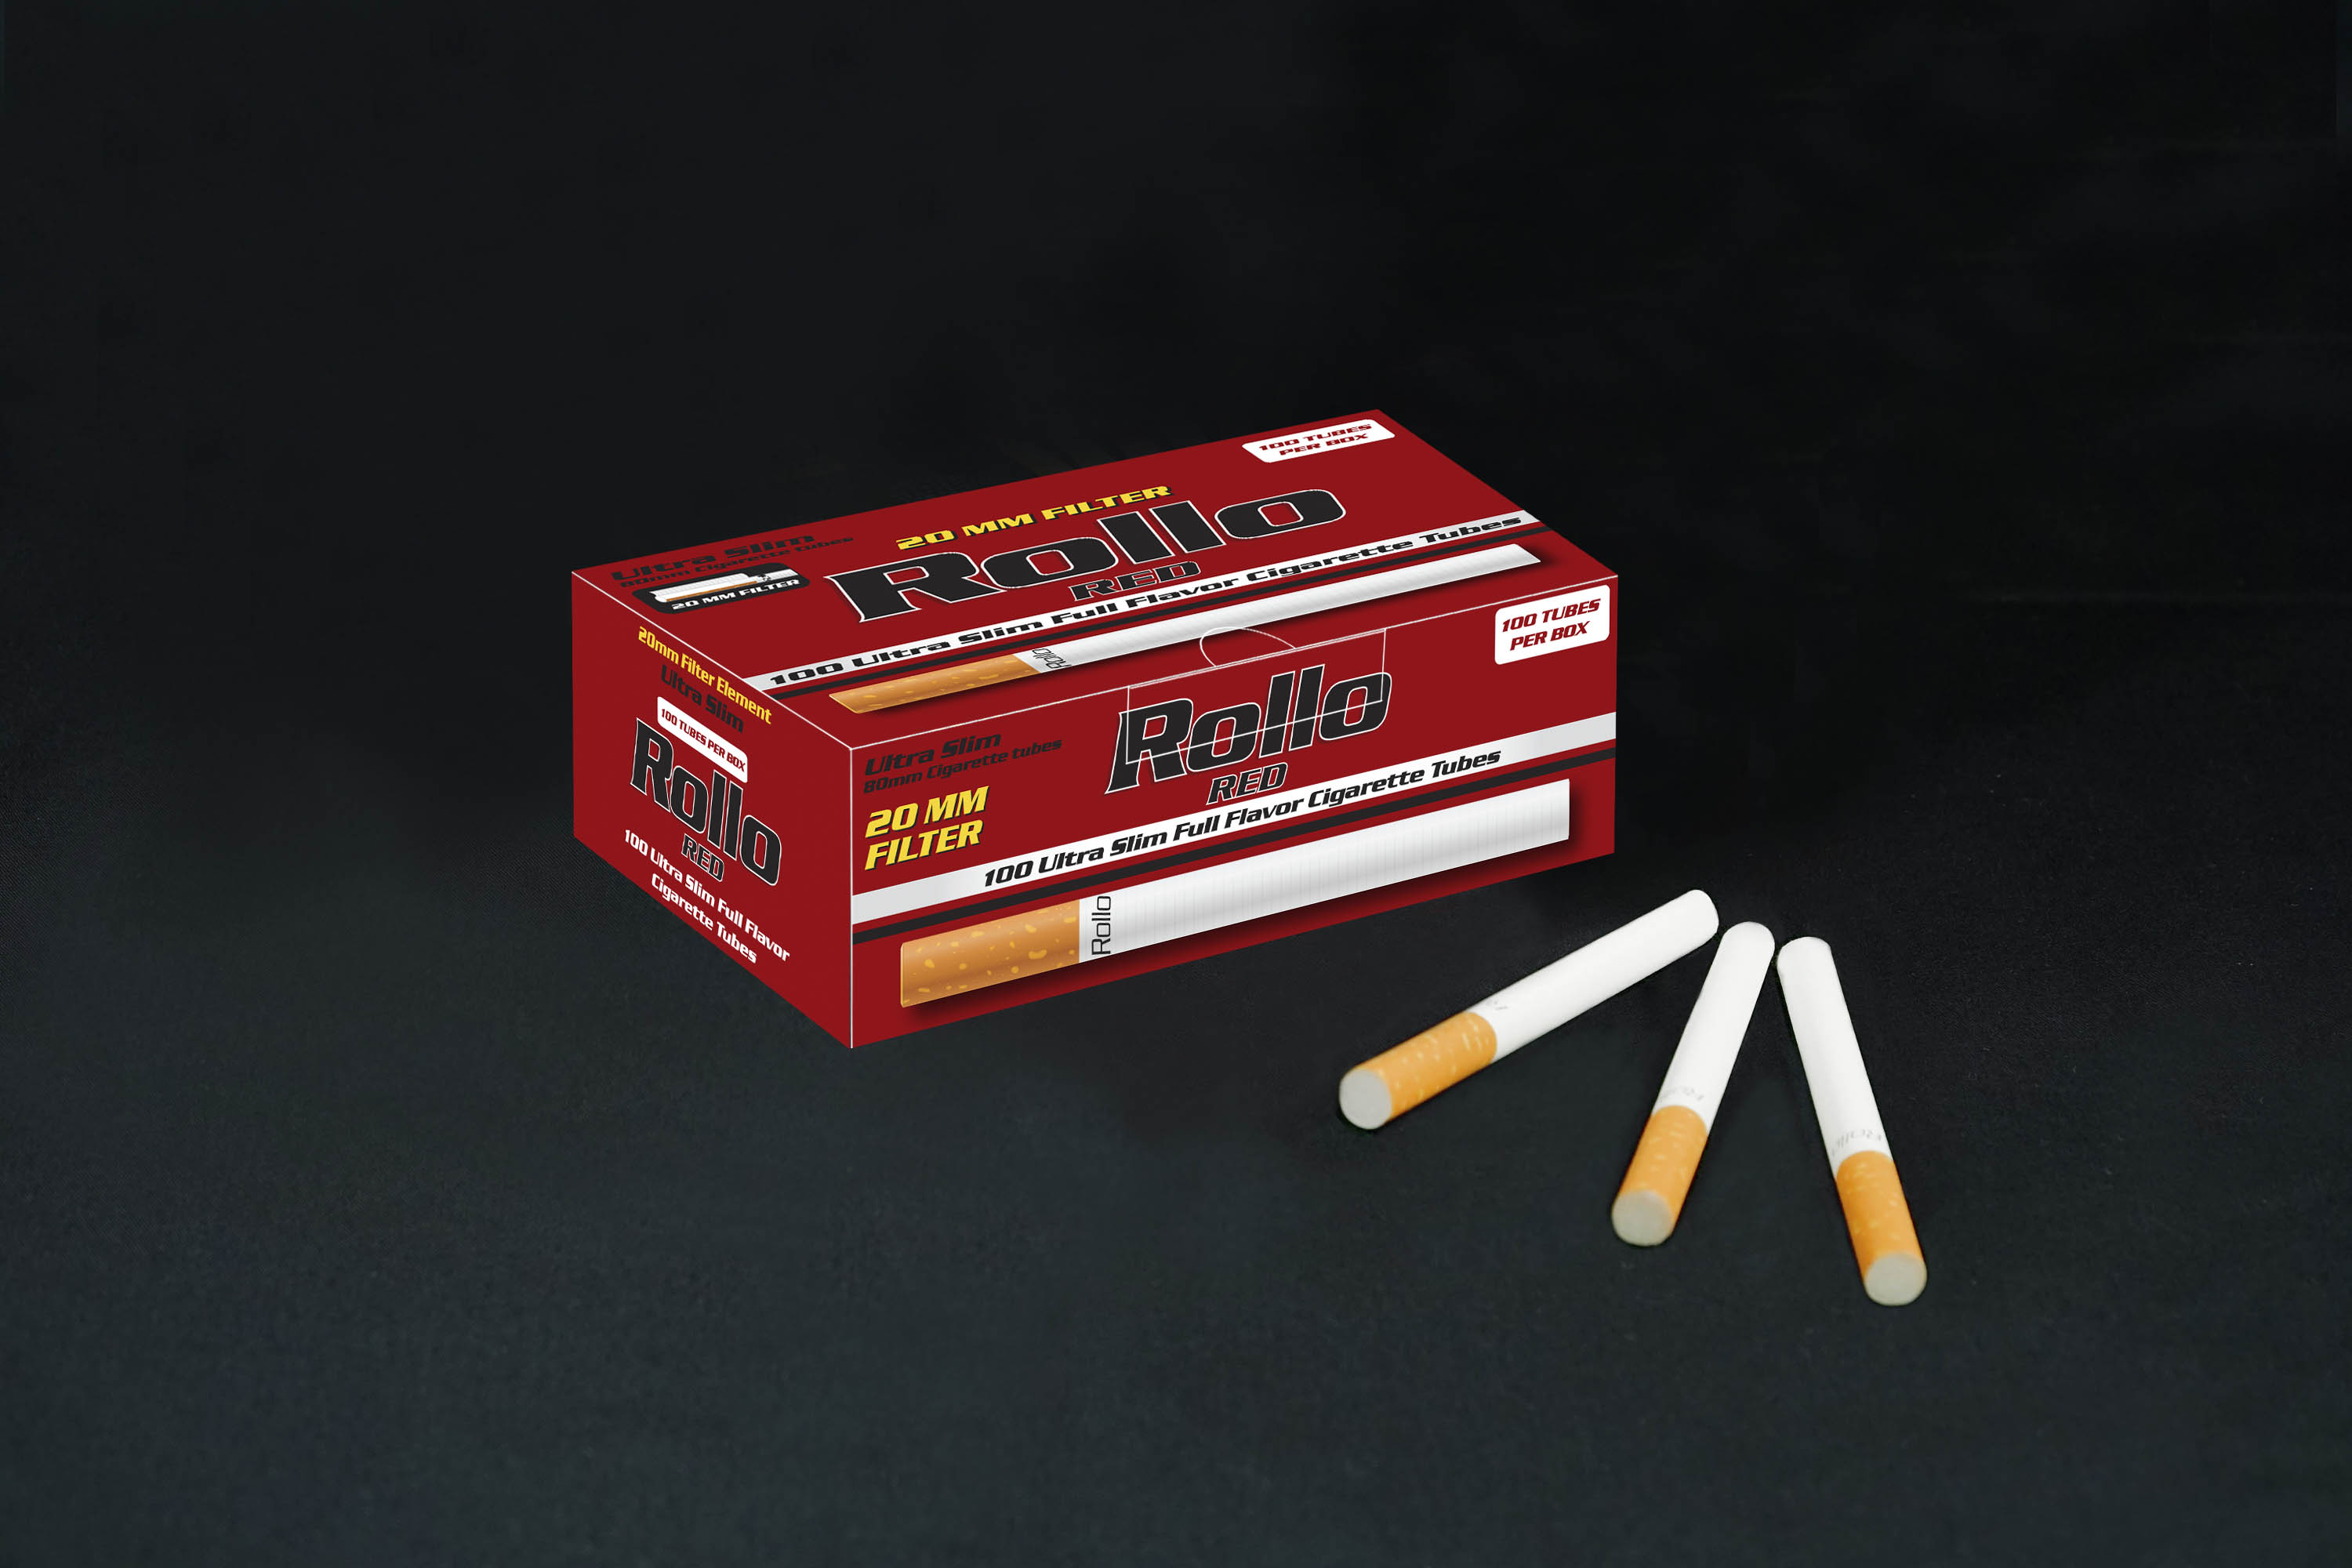 Ultra Slim Cigarette Tubes Rollo Red 100 CT 20mm filter length